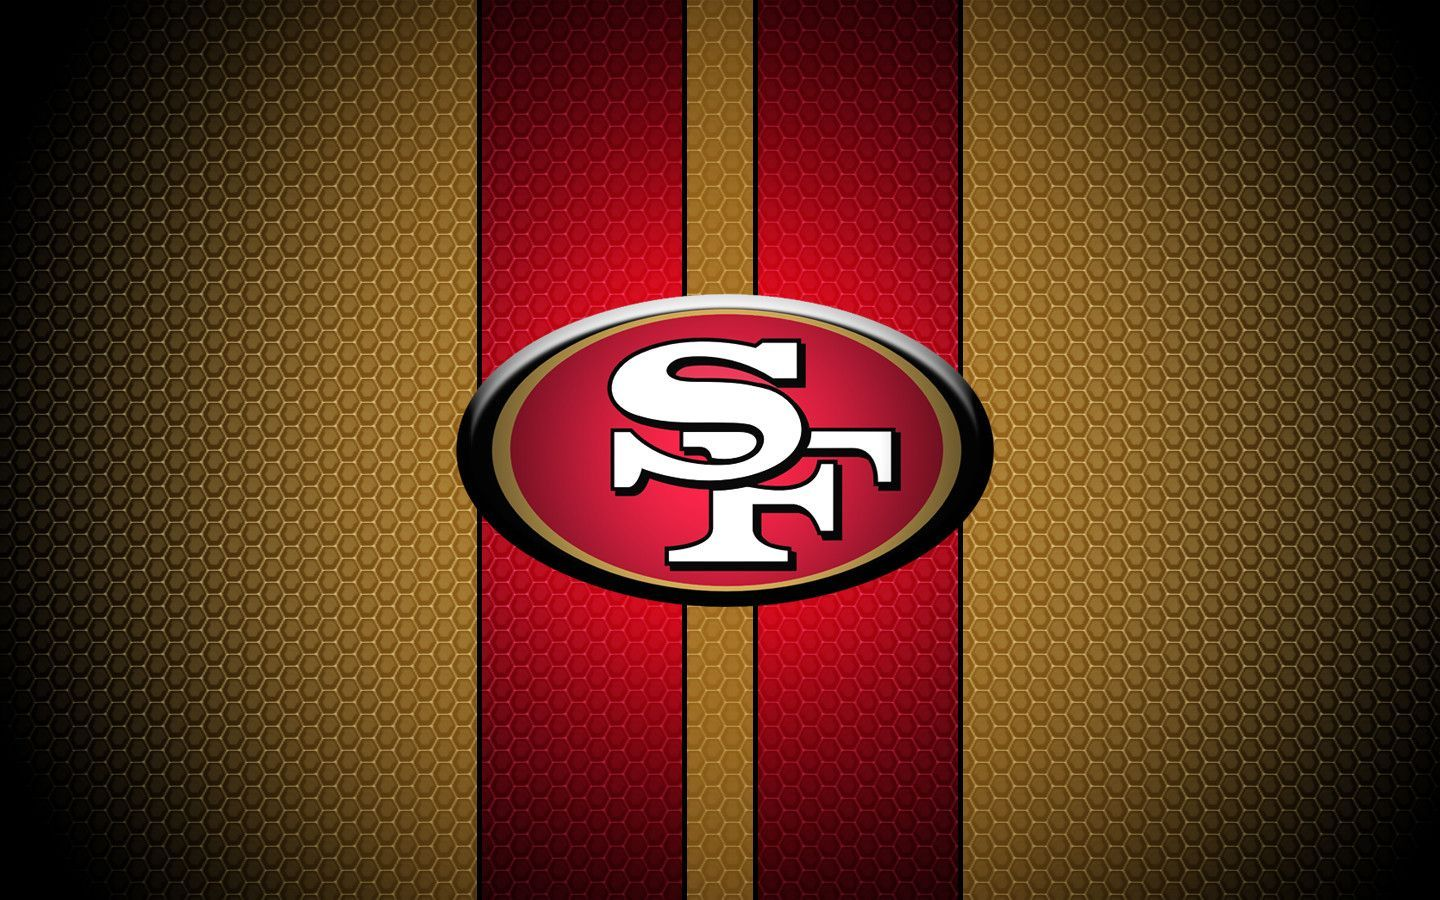 Wallpaper 49ers